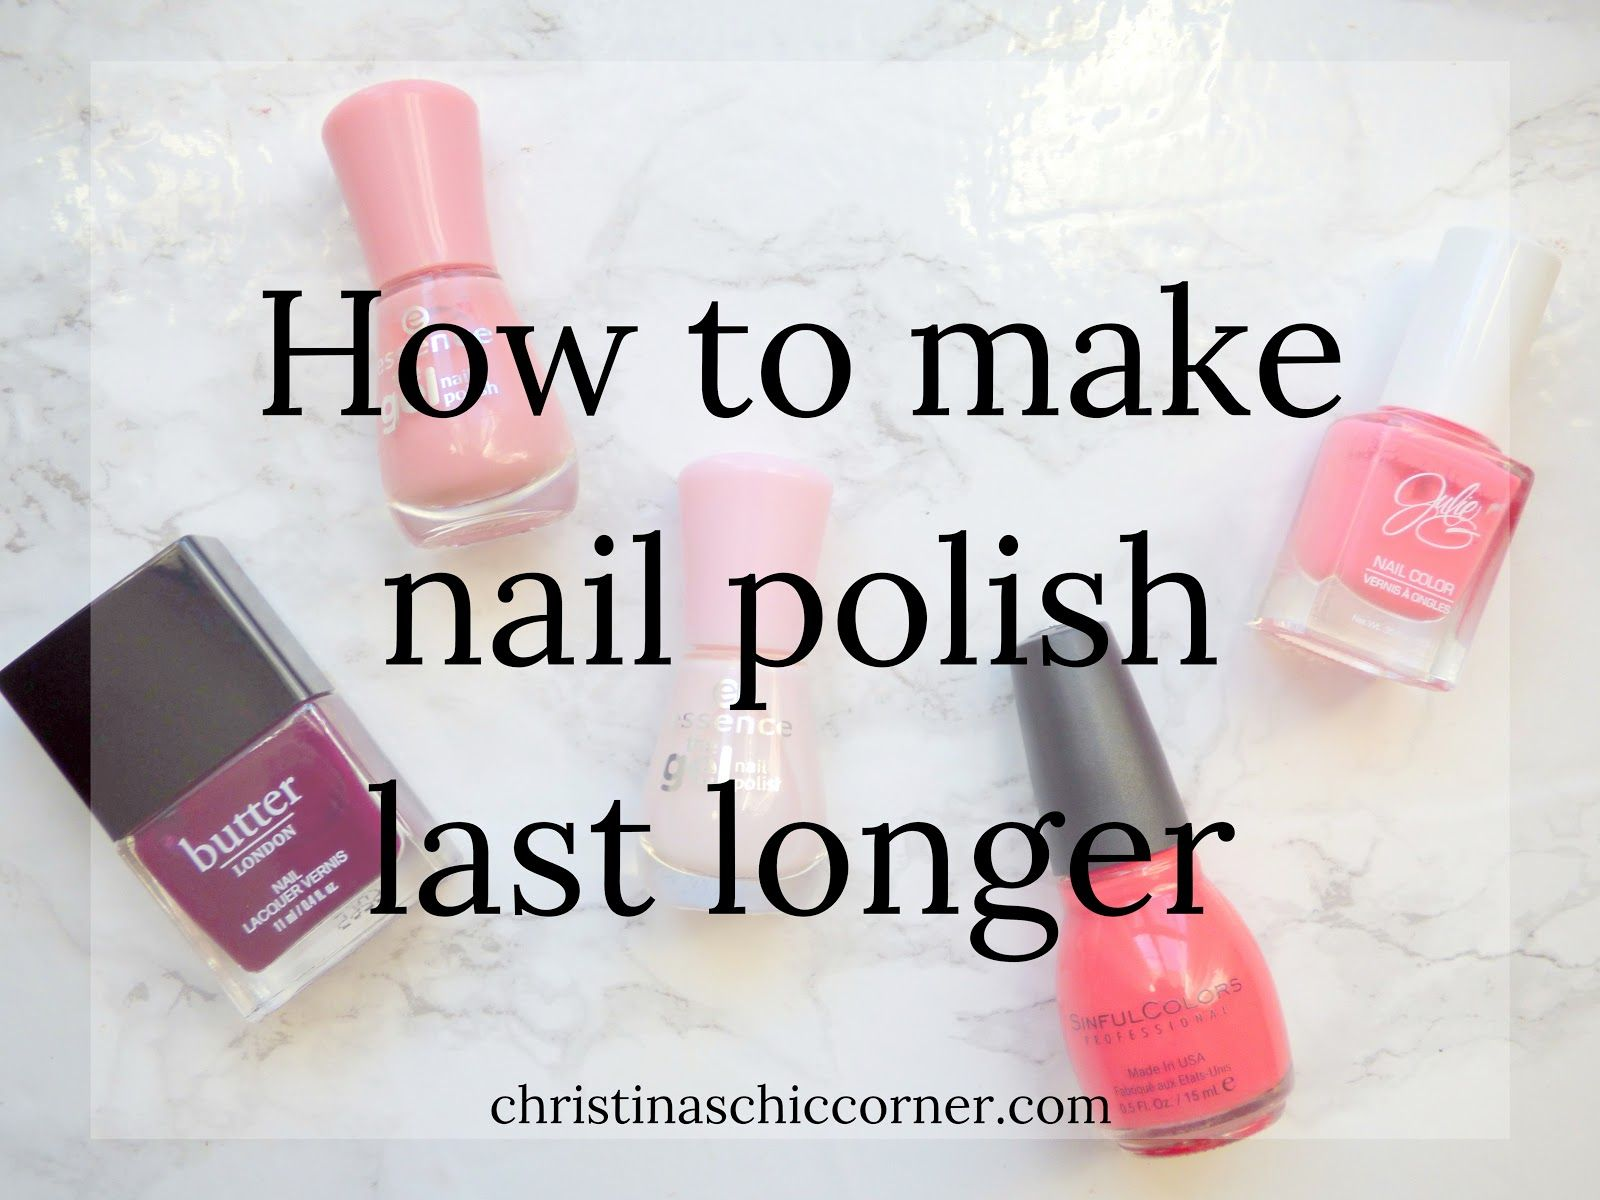 How To Make Nail Polish Last Longer Long Lasting Nail Polish Nail Polish Polish